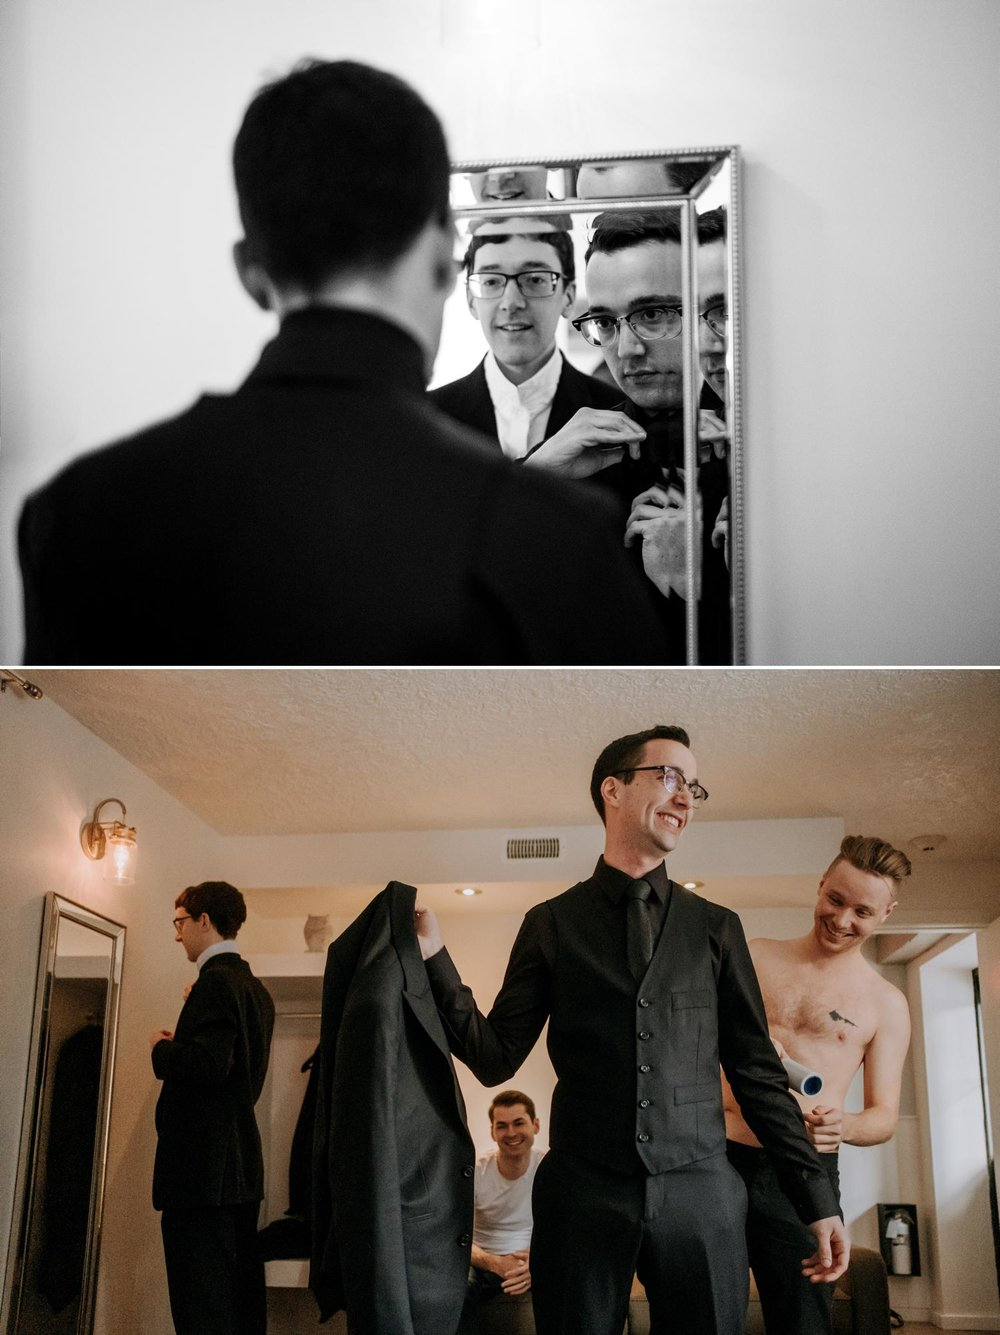 photos of a groom getting ready for his wedding ceremony